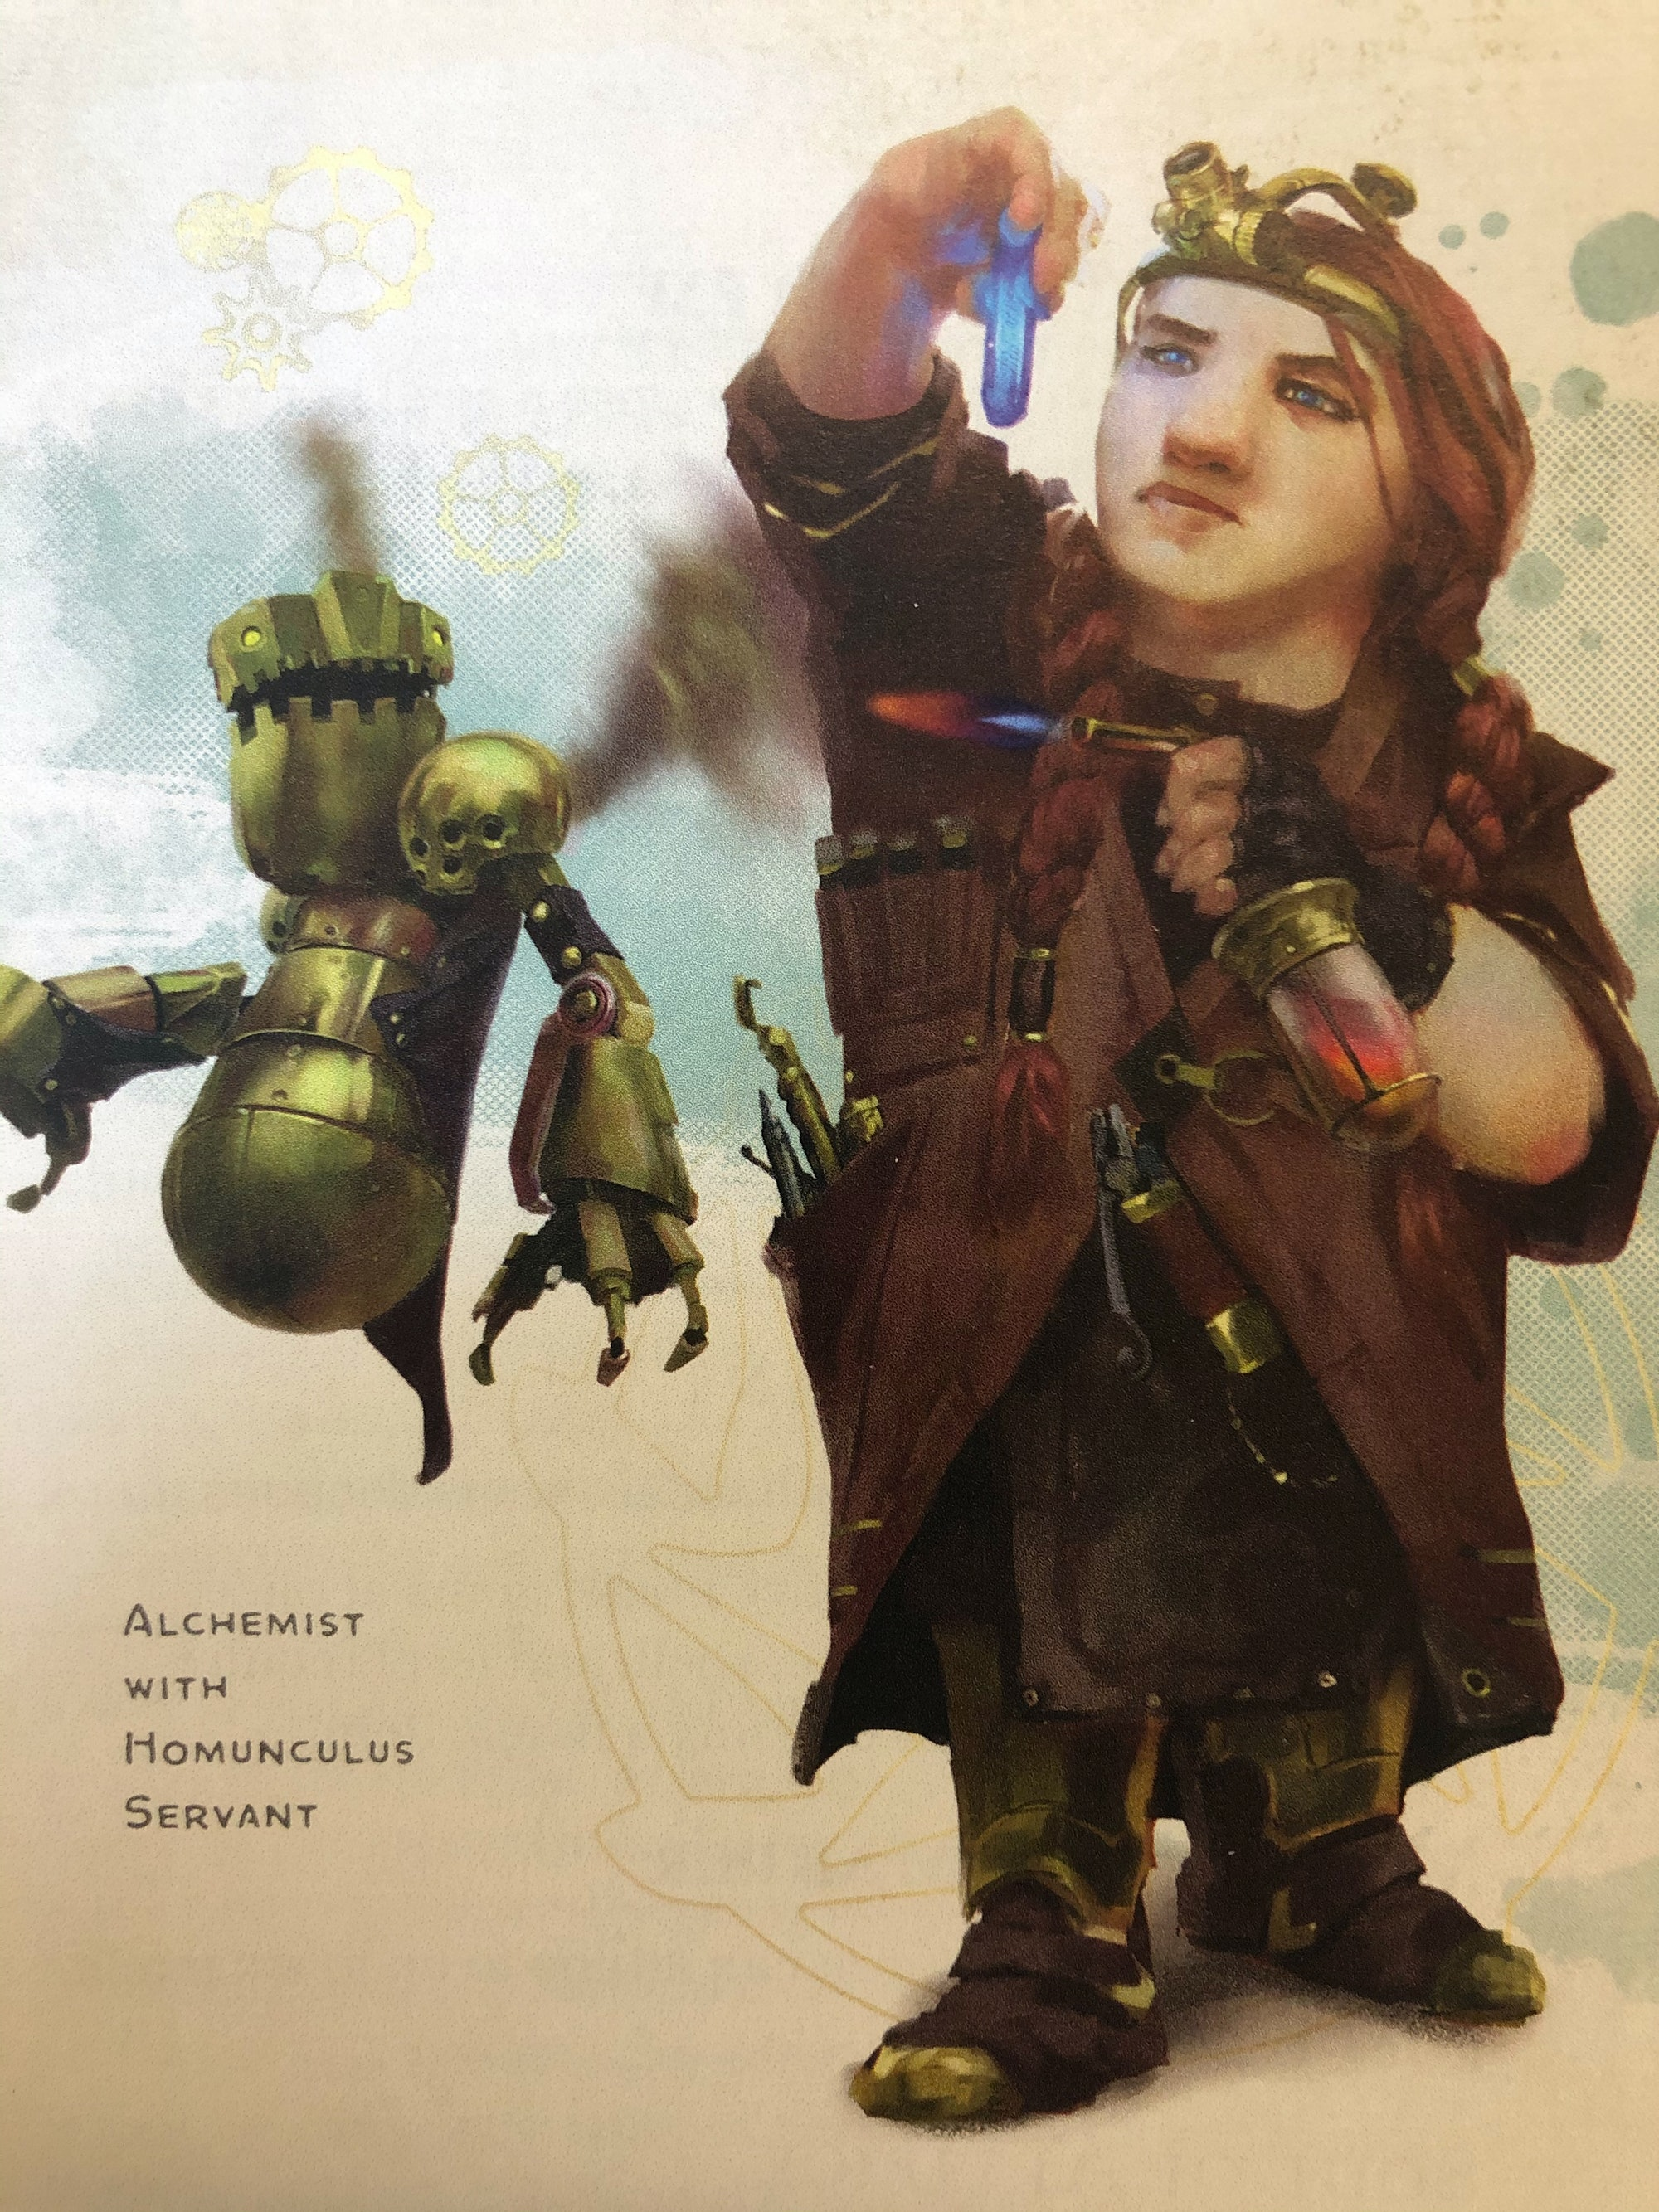 artificer with homunculus